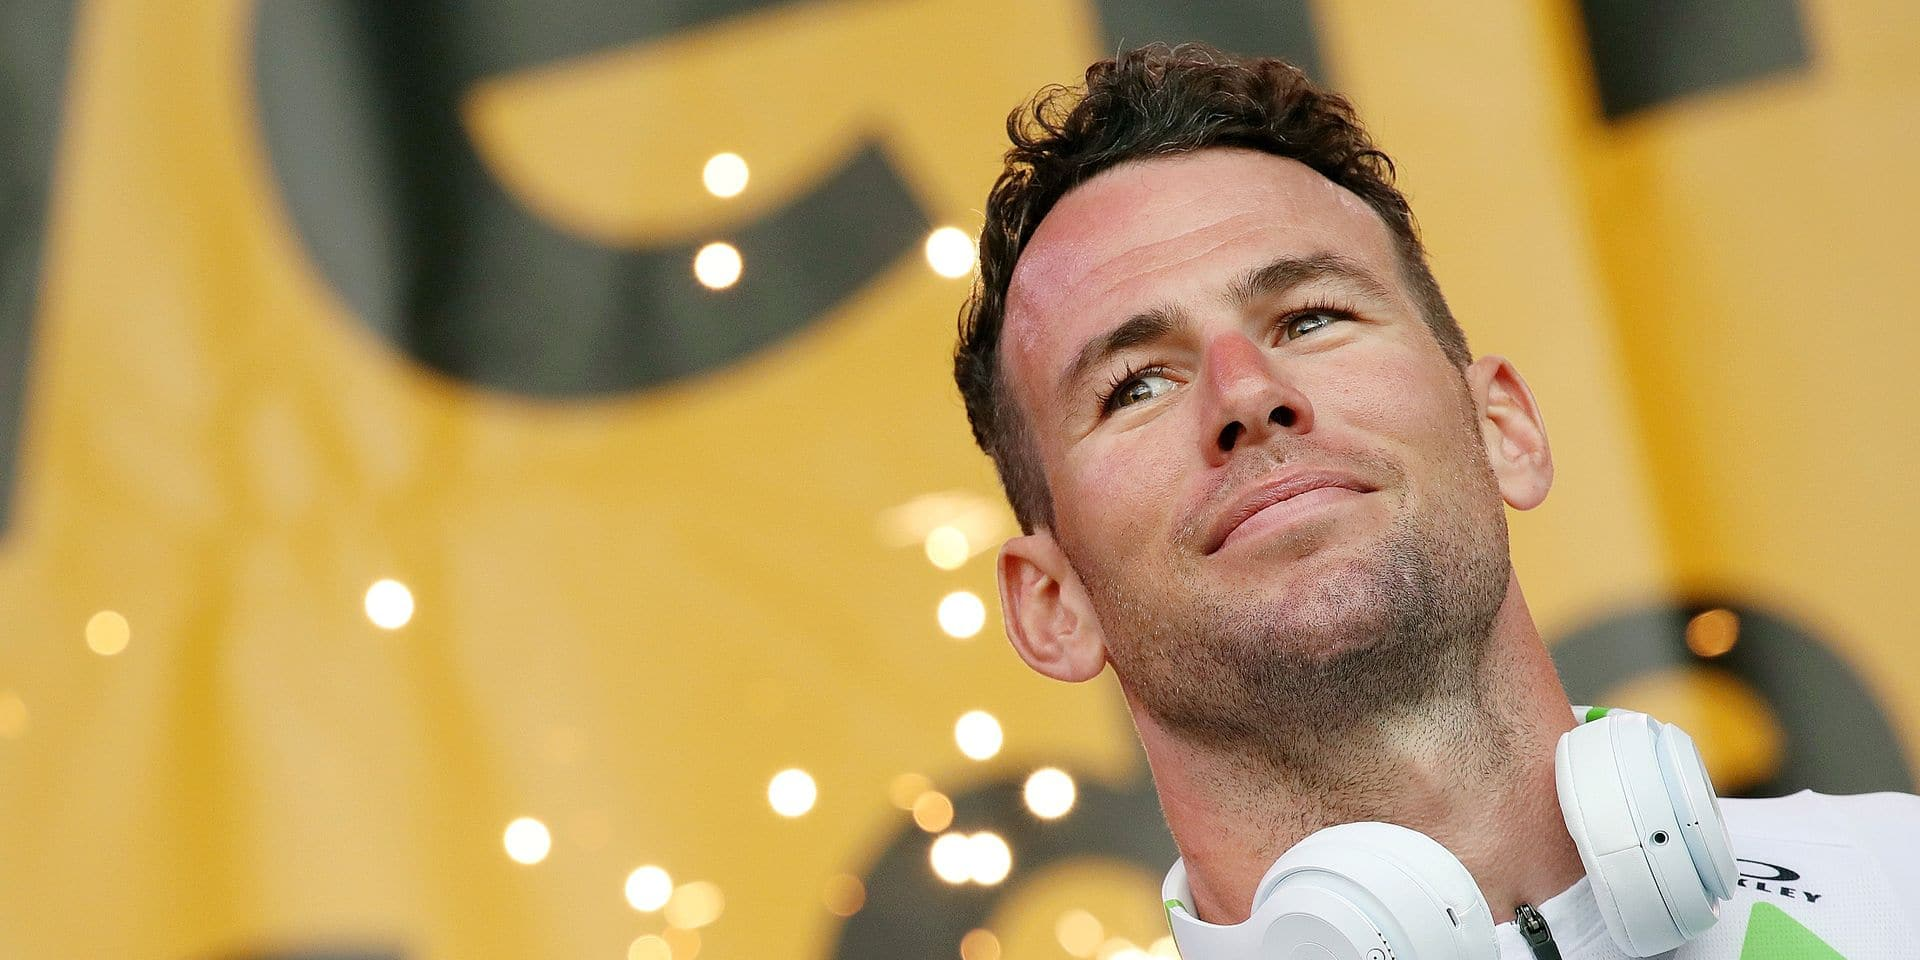 FILE - In this Thursday, July 5, 2018 file photo, Britain's sprinter Mark Cavendish listens during the Tour de France cycling race team presentation in La Roche-sur-Yon, Vendee region, France, ahead of Saturday's start of the race. Mark Cavendish will take an indefinite break from cycling after being diagnosed with the Epstein-Barr virus for the second time in his career. (AP Photo/Christophe Ena, File)